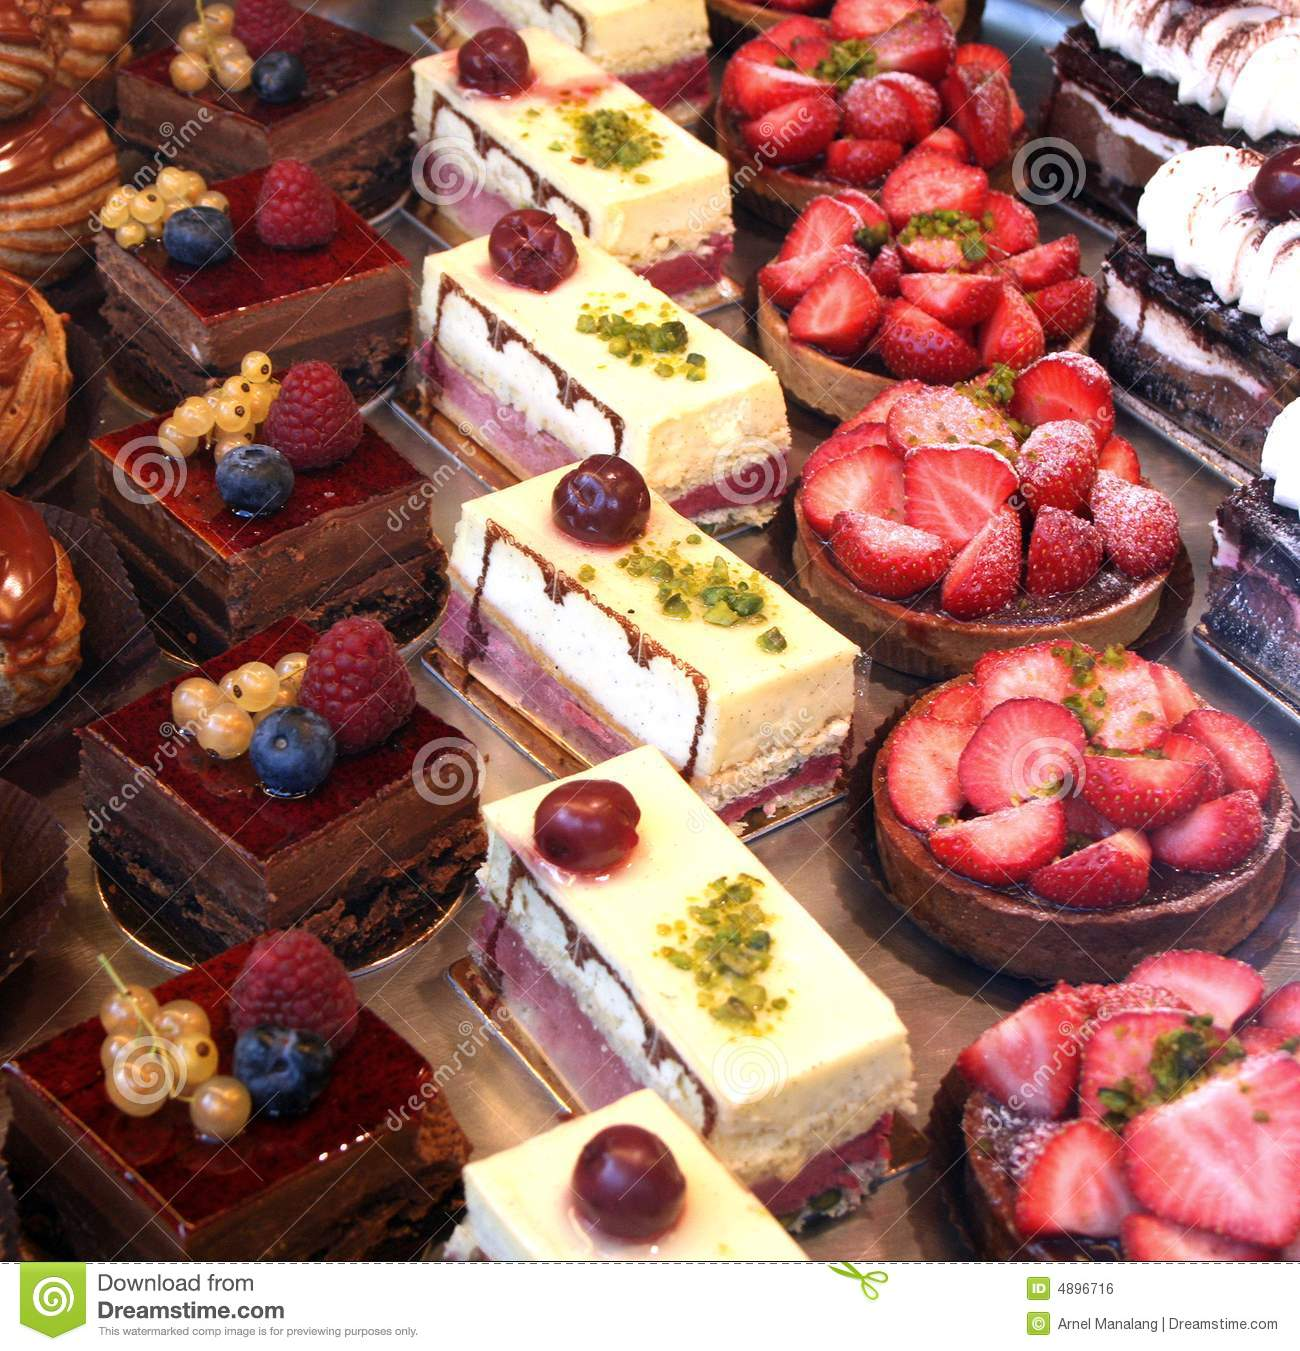 Colourful Fruit Cake: Colorful Pastry Display Royalty Free Stock Image